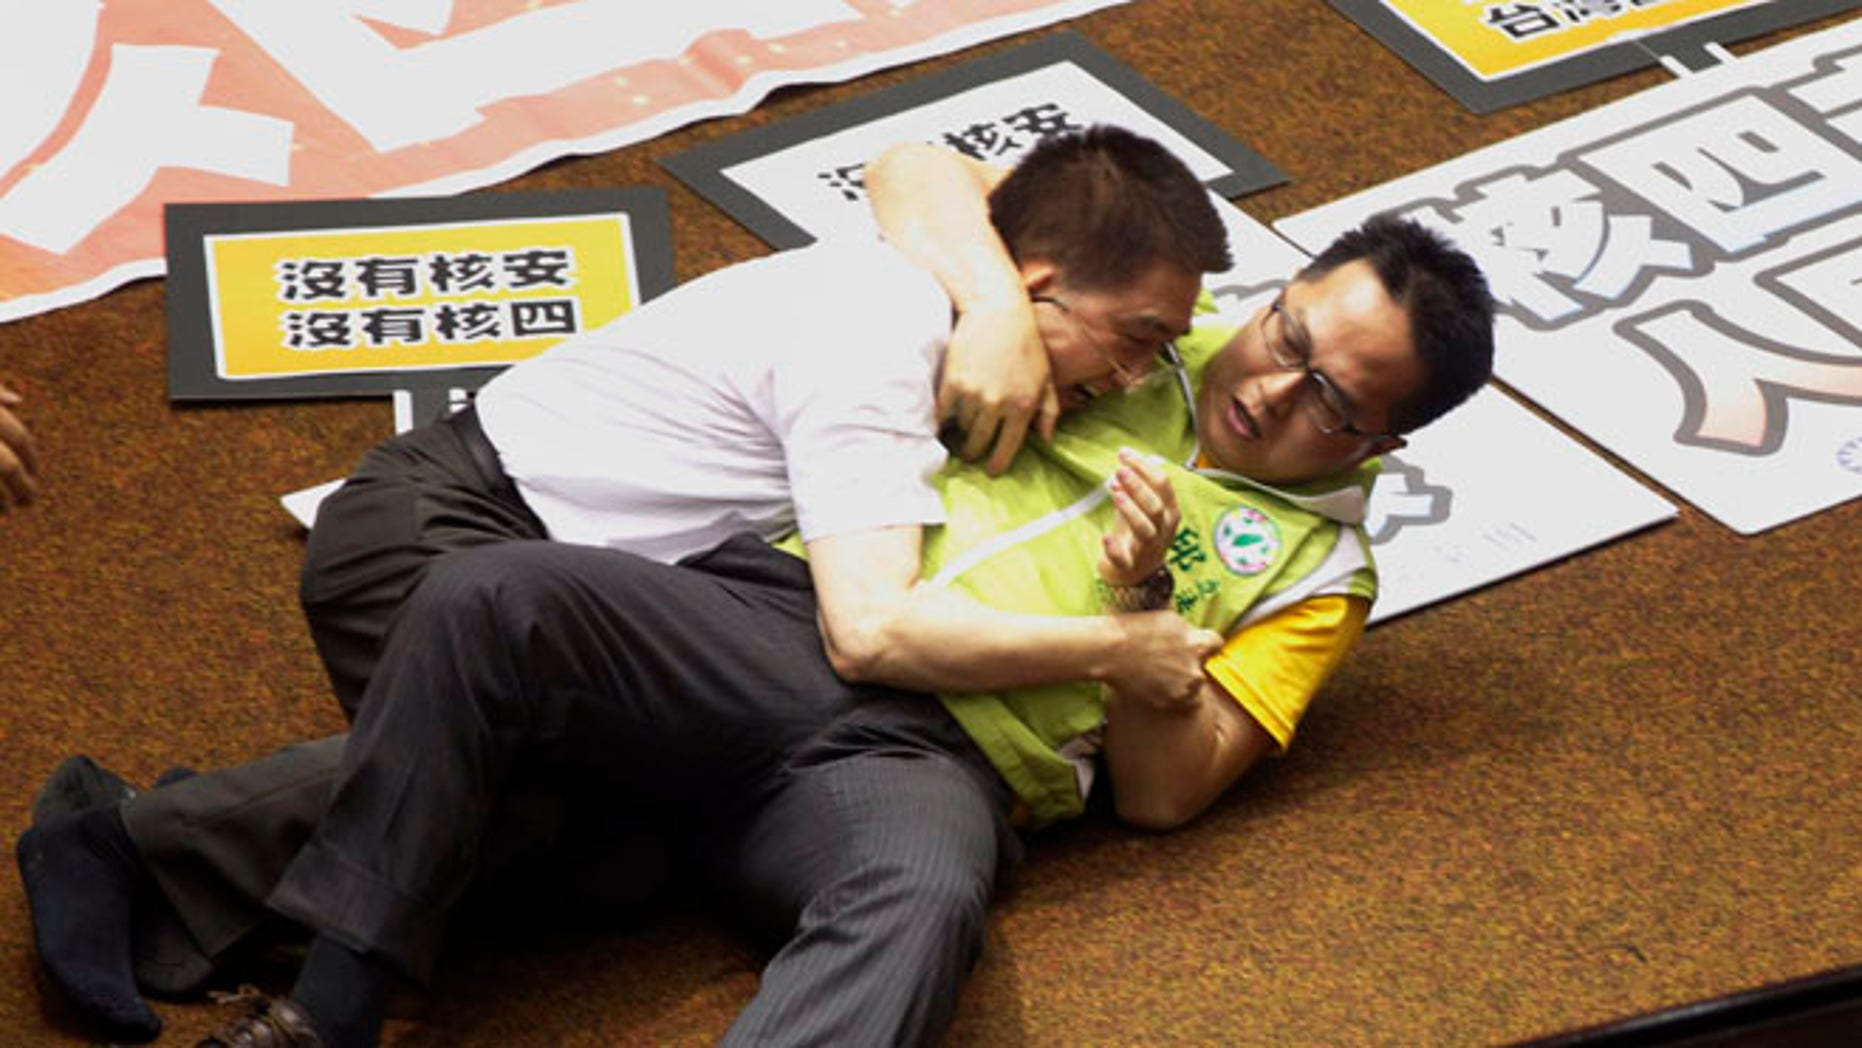 Aug 2, 2013: Ruling and opposition lawmakers fight each other on the legislature floor in Taipei, Taiwan.